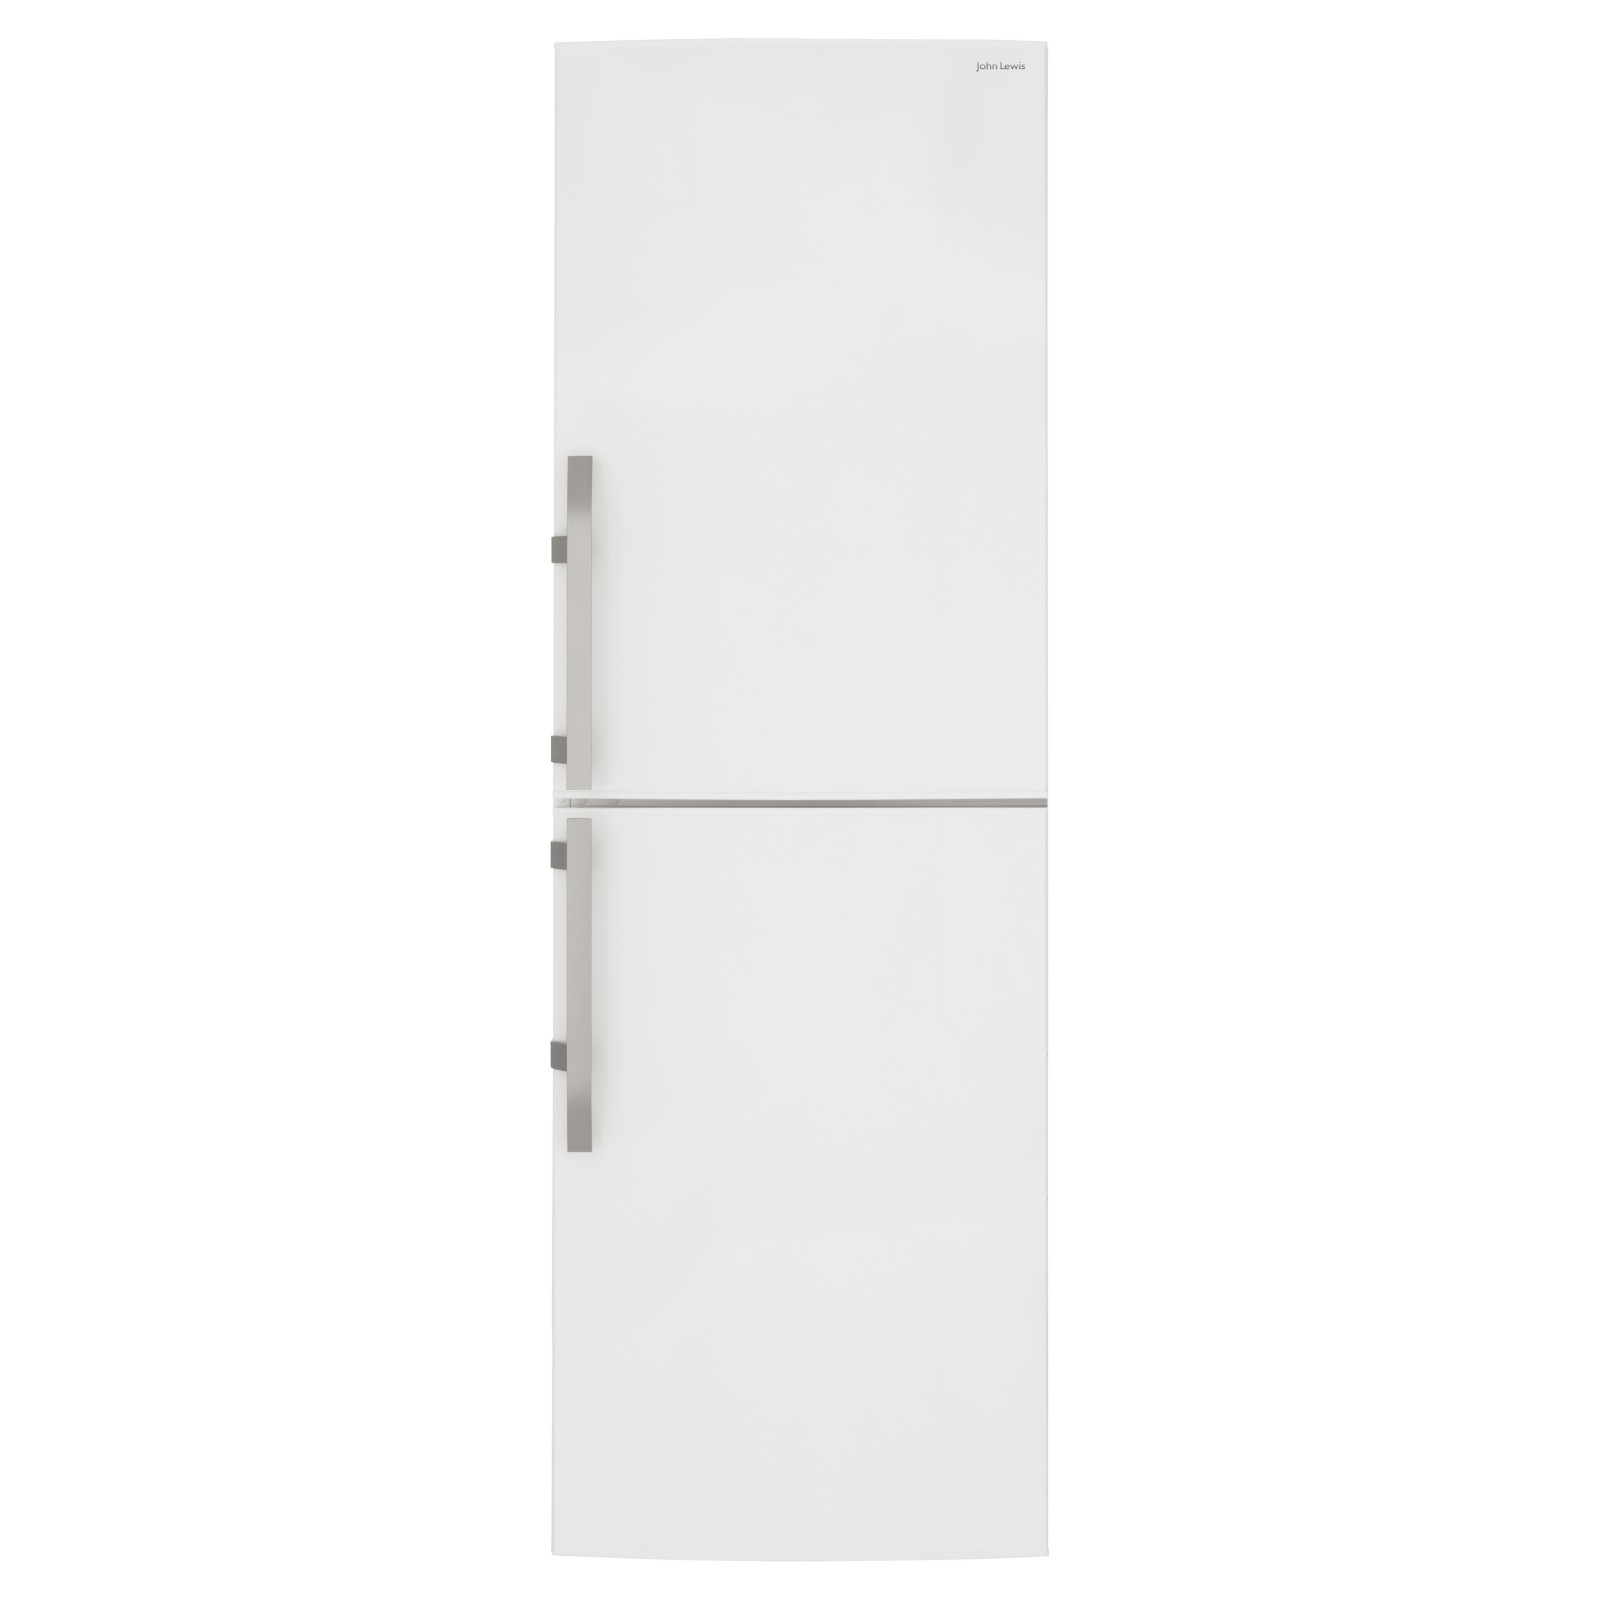 John Lewis JLFFW1818 Fridge Freezer